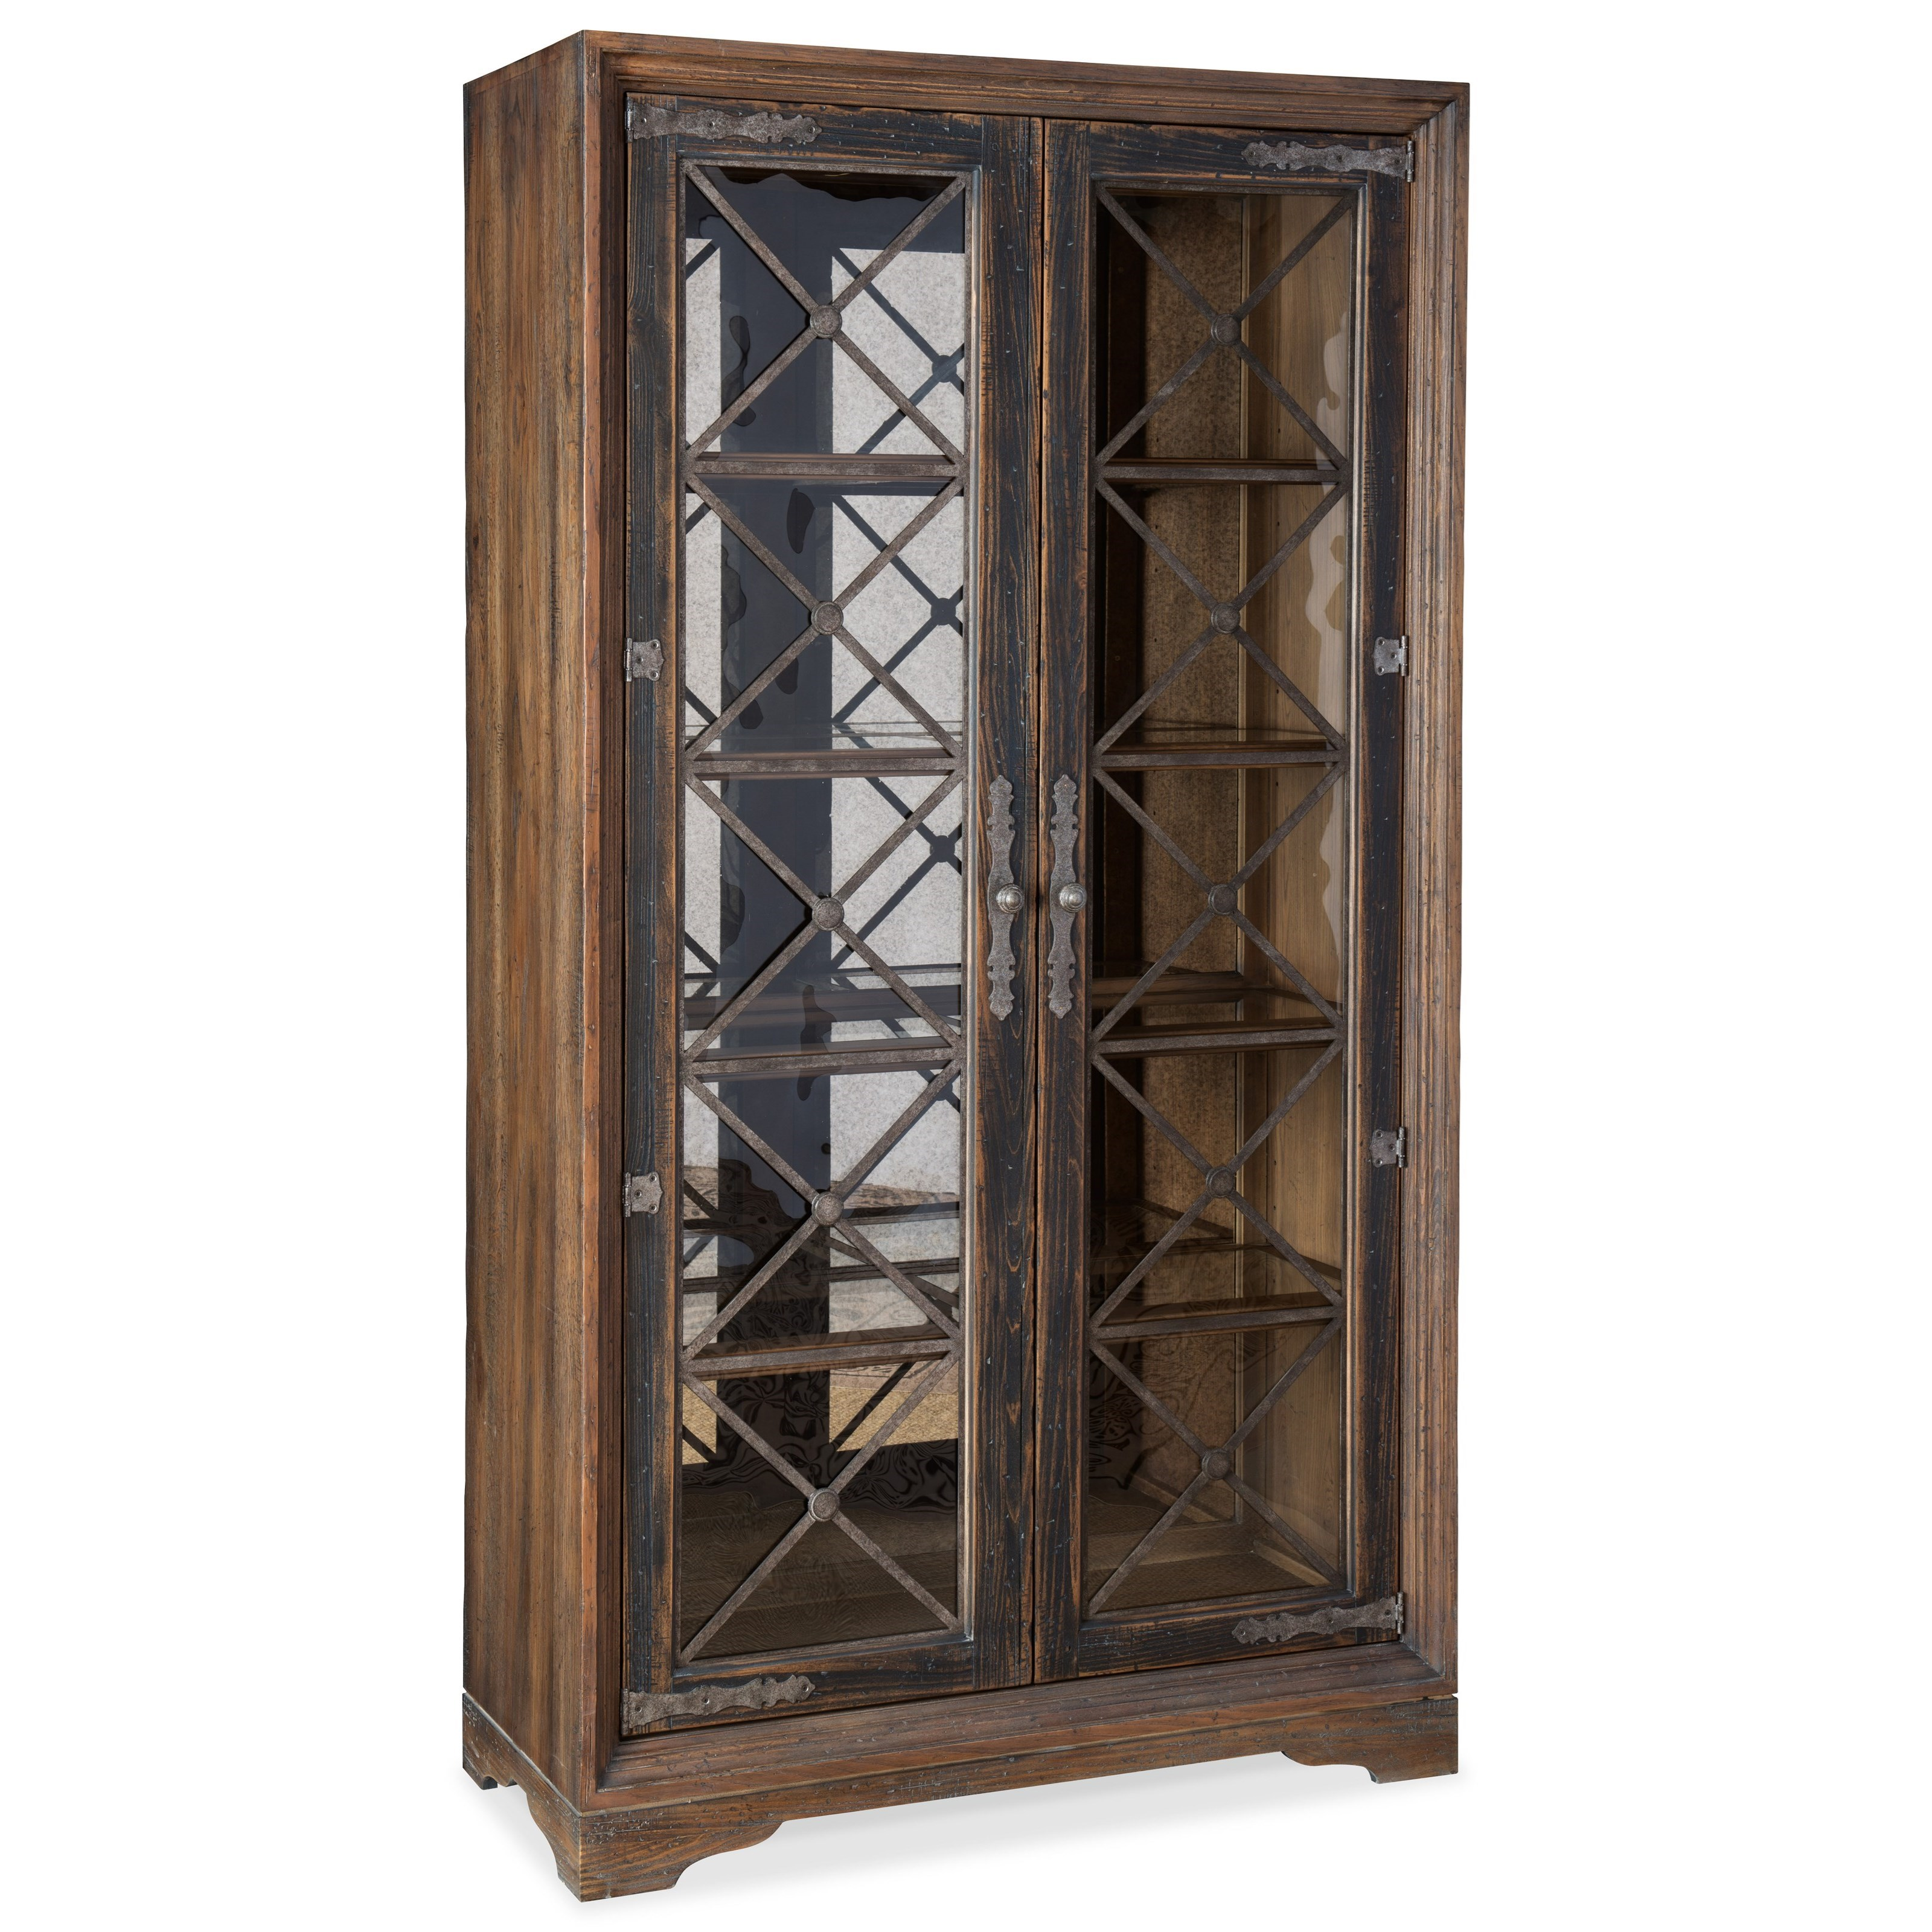 Hill Country Sattler Display Cabinet by Hooker Furniture at Alison Craig Home Furnishings